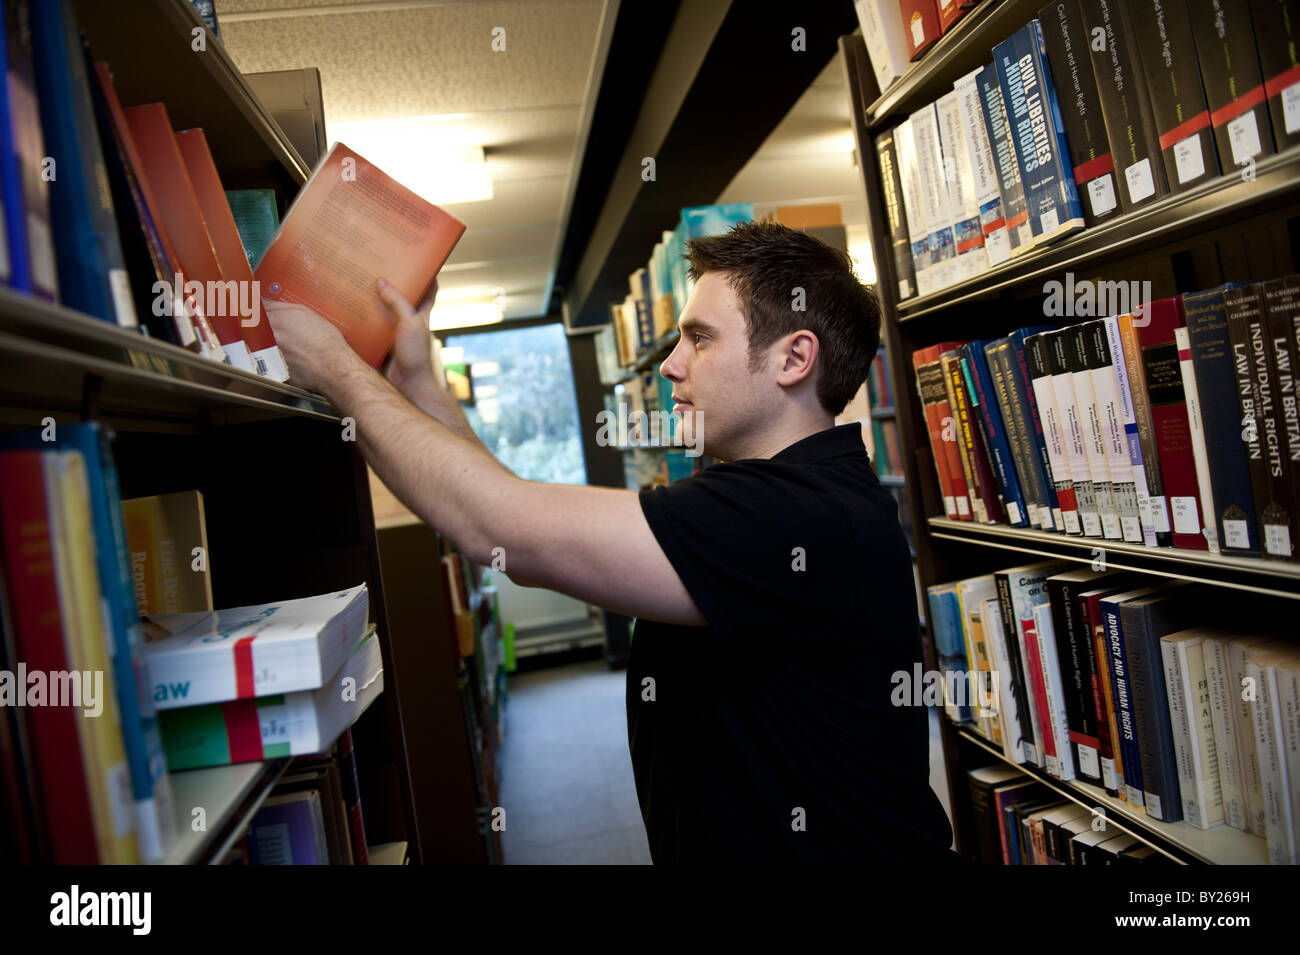 A mature student at Aberystwyth University taking a textbook from the shelf of the Law library, UK - Stock Image